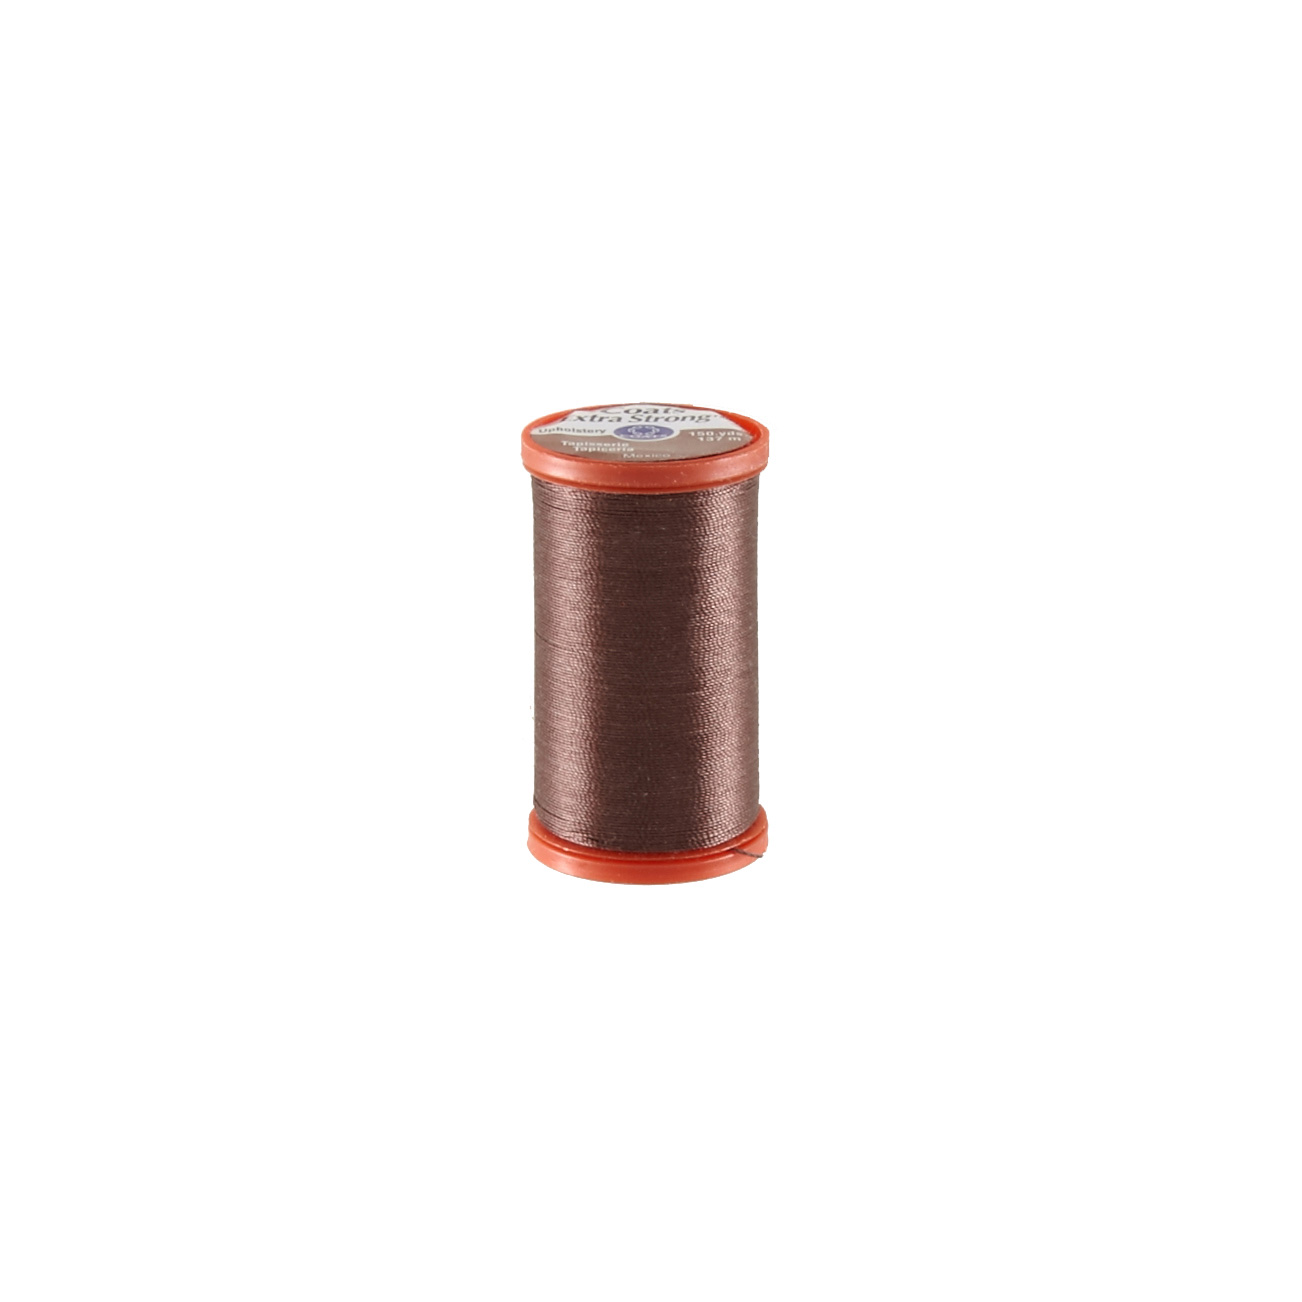 Coats & Clark Specialty Thread Upholstery 150 Yd Chona Brown